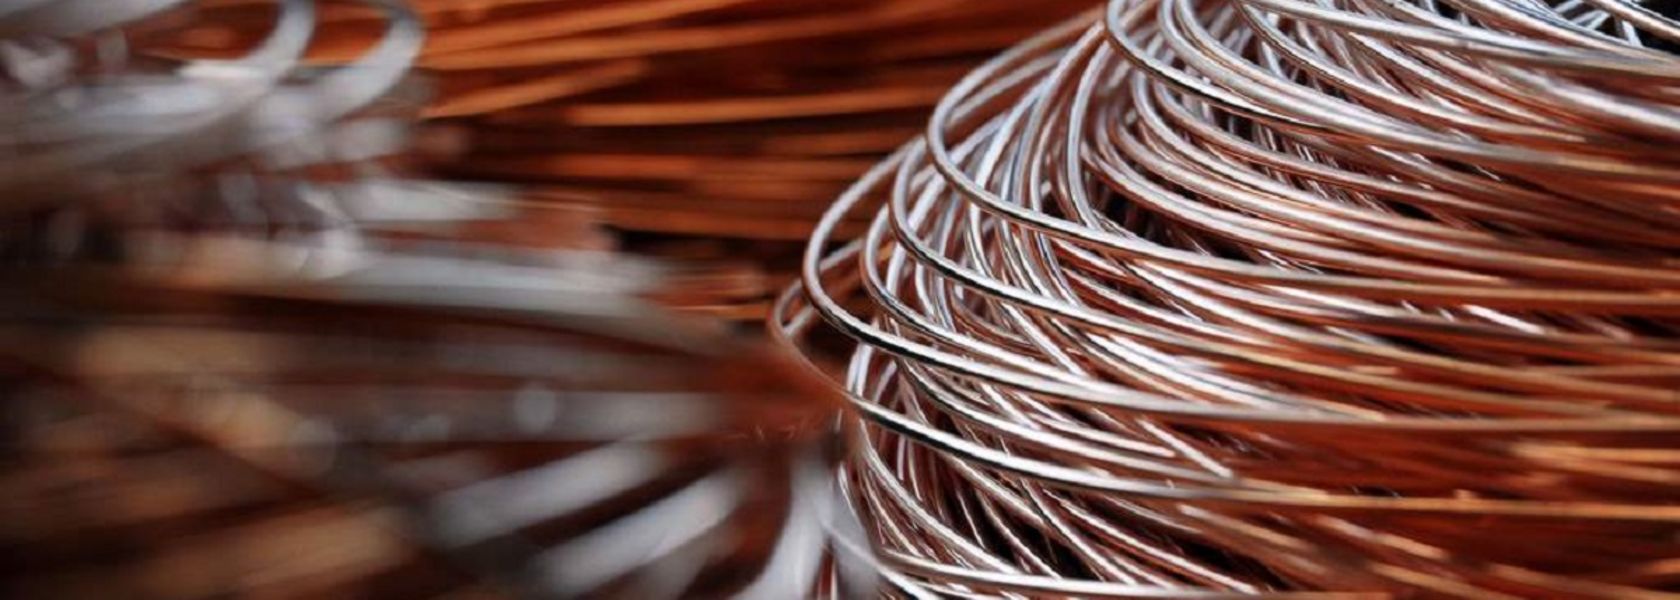 Threat of copper substitution real - MiningNews.net